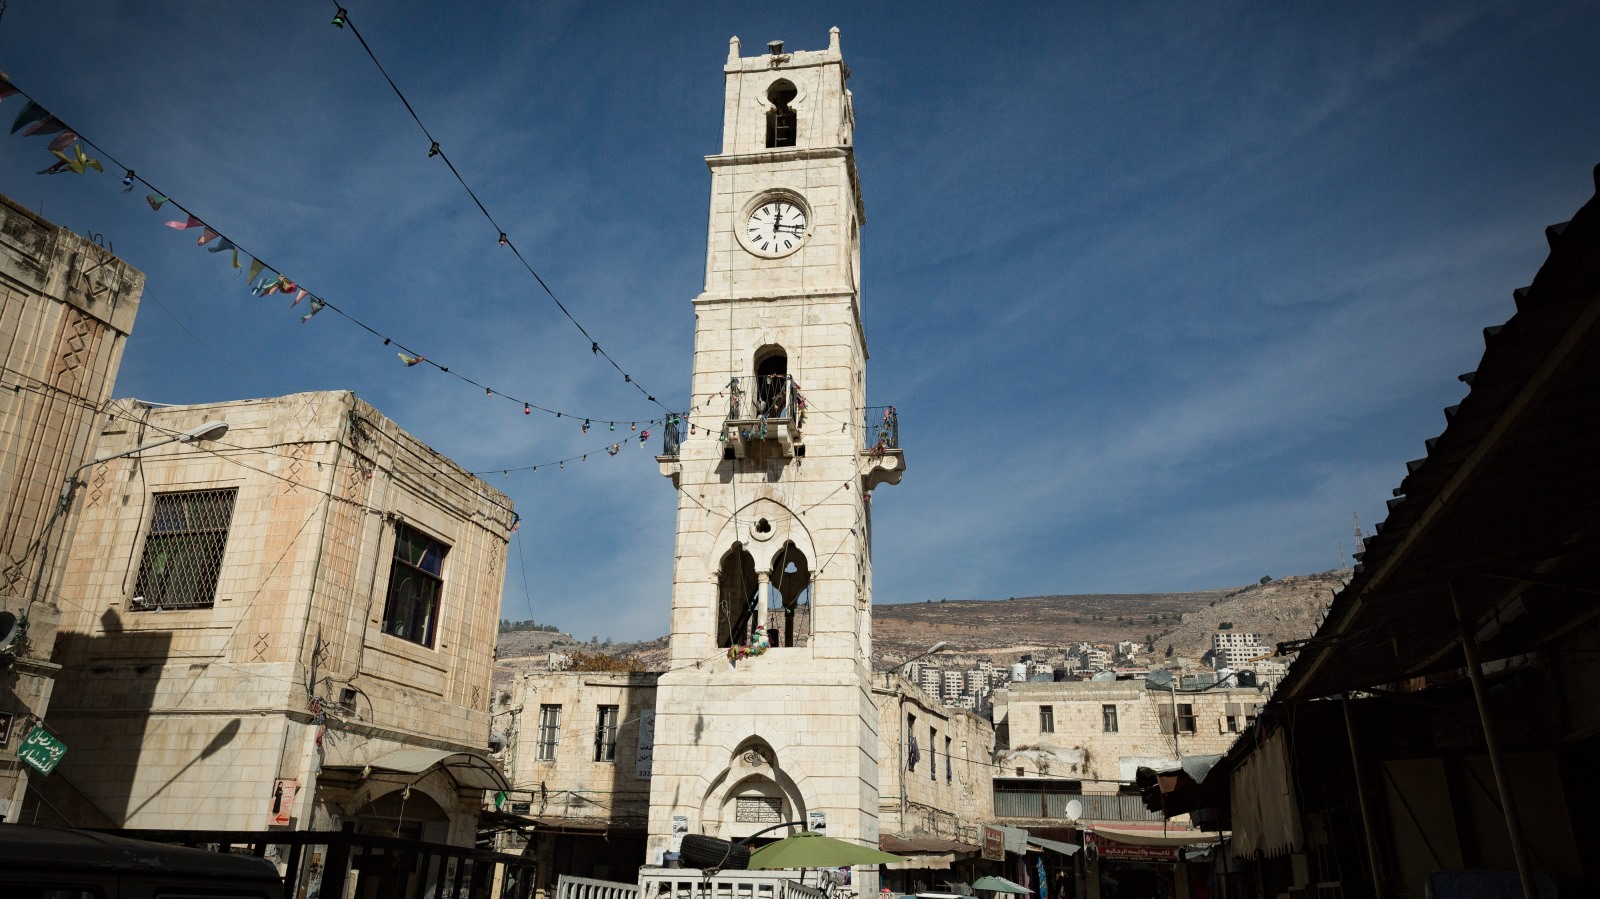 The al-Manara clock tower was built in 1906 in Nablus, now in the Palestinian Authority-administered territories. Photo by Sebi Berens/FLASH90